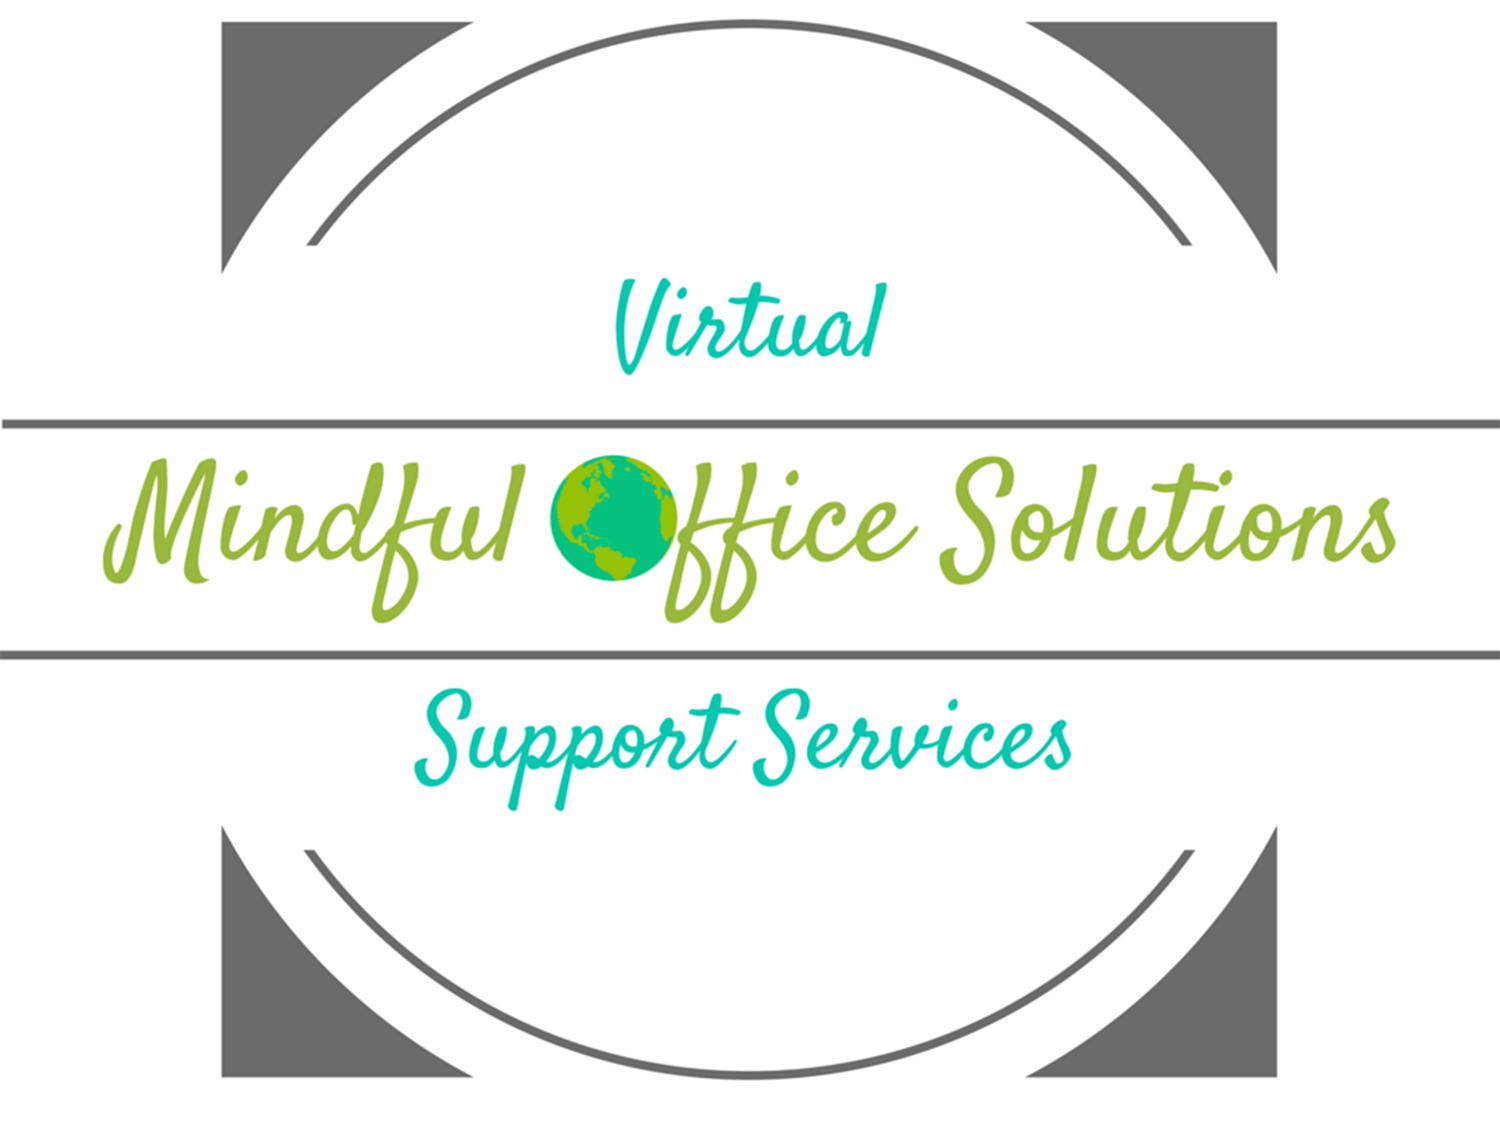 Mindful Office Solutions